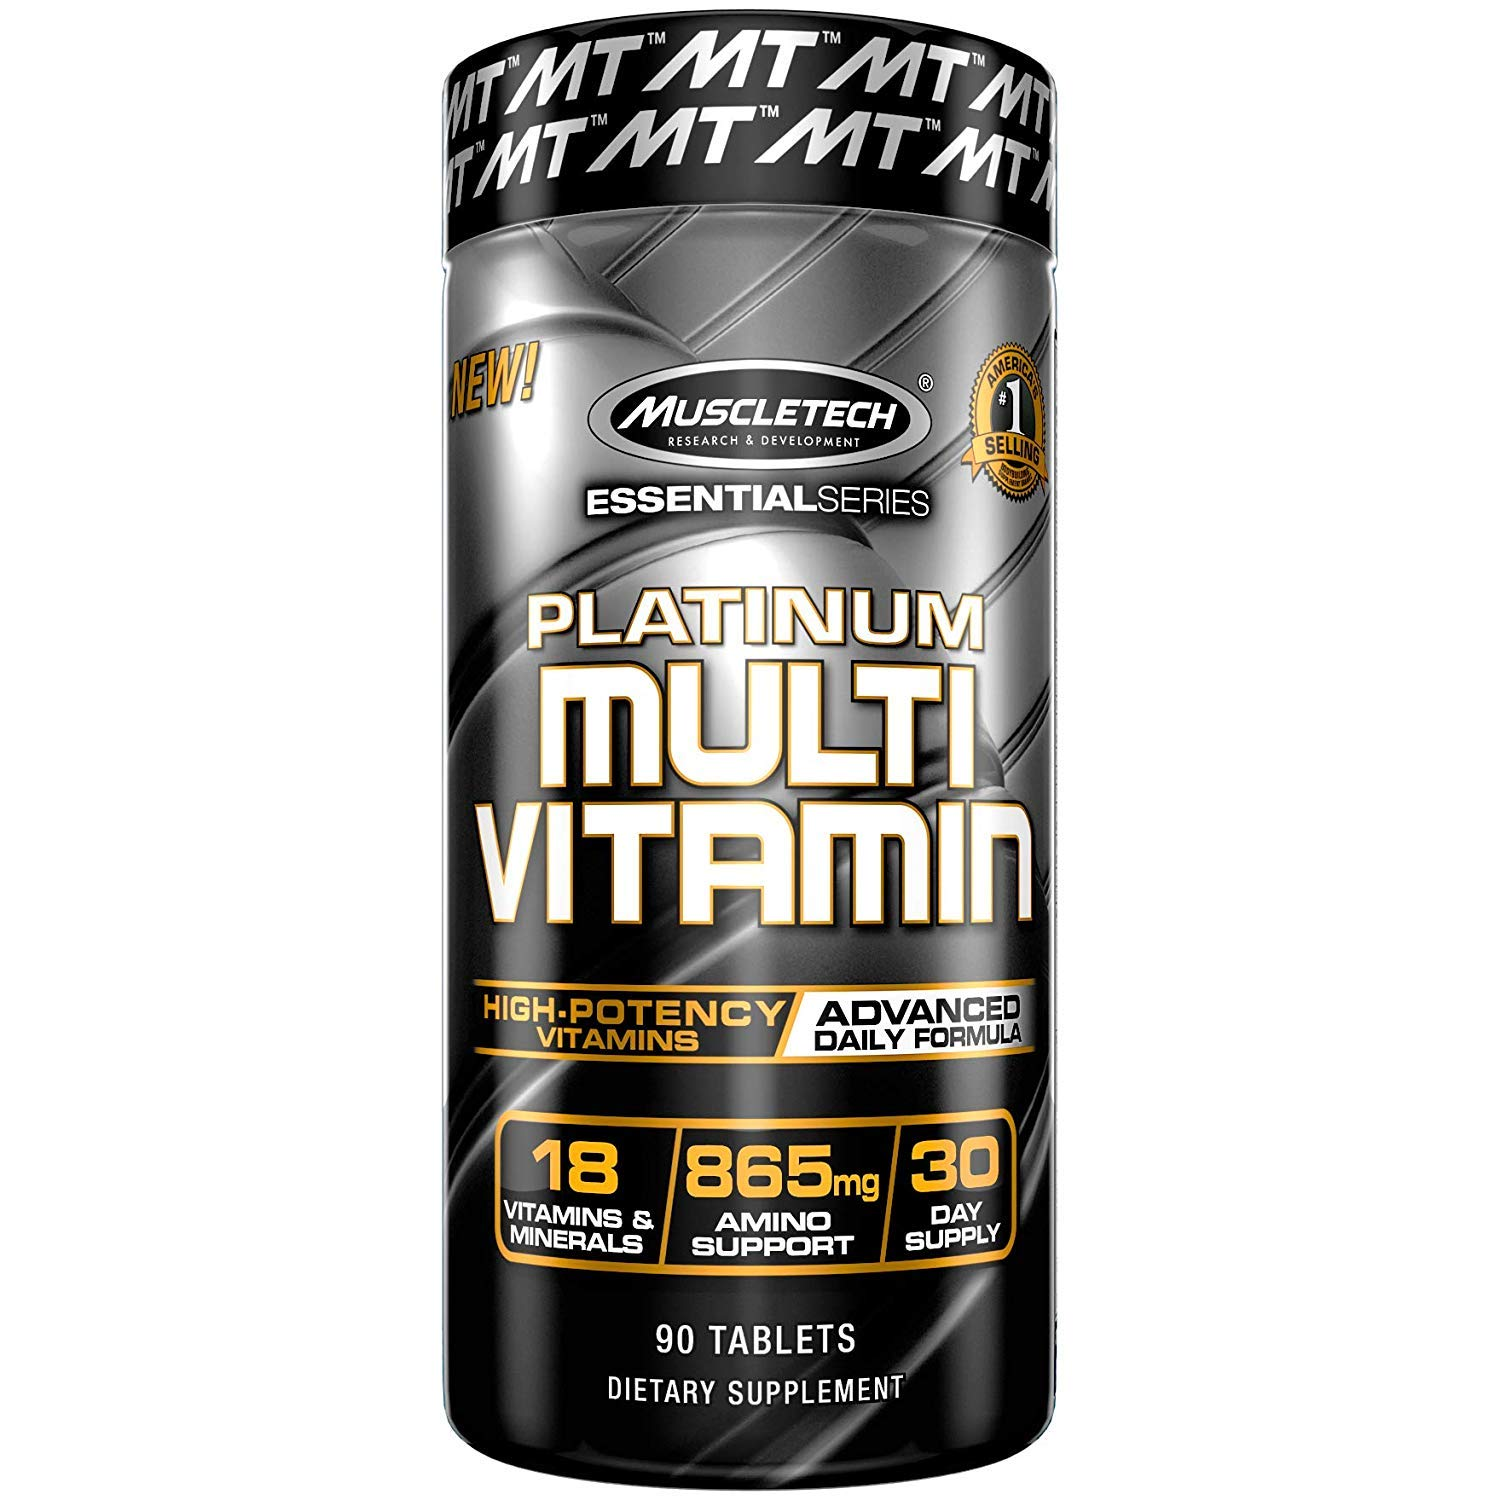 multivitamin,multivitamins,best multivitamin,women's multivitamin,should you take a multivitamin,men's multivitamin,multivitamin for women,prenatal multivitamin,mutlvitamin,multivitamins review,should i take a multivitamin,multivitamins benefits,benefits of multivitamins,are multivitamins necessary,are multivitamins good for you,multivitamins for weight loss,vitamins,multi-vitamin,multivitamin tab,men multivitamin,beat multivitamin,muscletech,muscletech multivitamin,muscletech platinum multi vitamin,muscletech platinum,muscletech (brand),muscletech platinum multivitamin,multivitamin,muscletech platinum multivitamin review,vitamins,muscletech platinum multi vitamin supplement,muscletech multivitamin review,platinum multi vitamin,multi vitamins,multi vitamin review,vitamin,on multi vitamin pills,vitamins and minerals,rsp nutrition multi vitamins